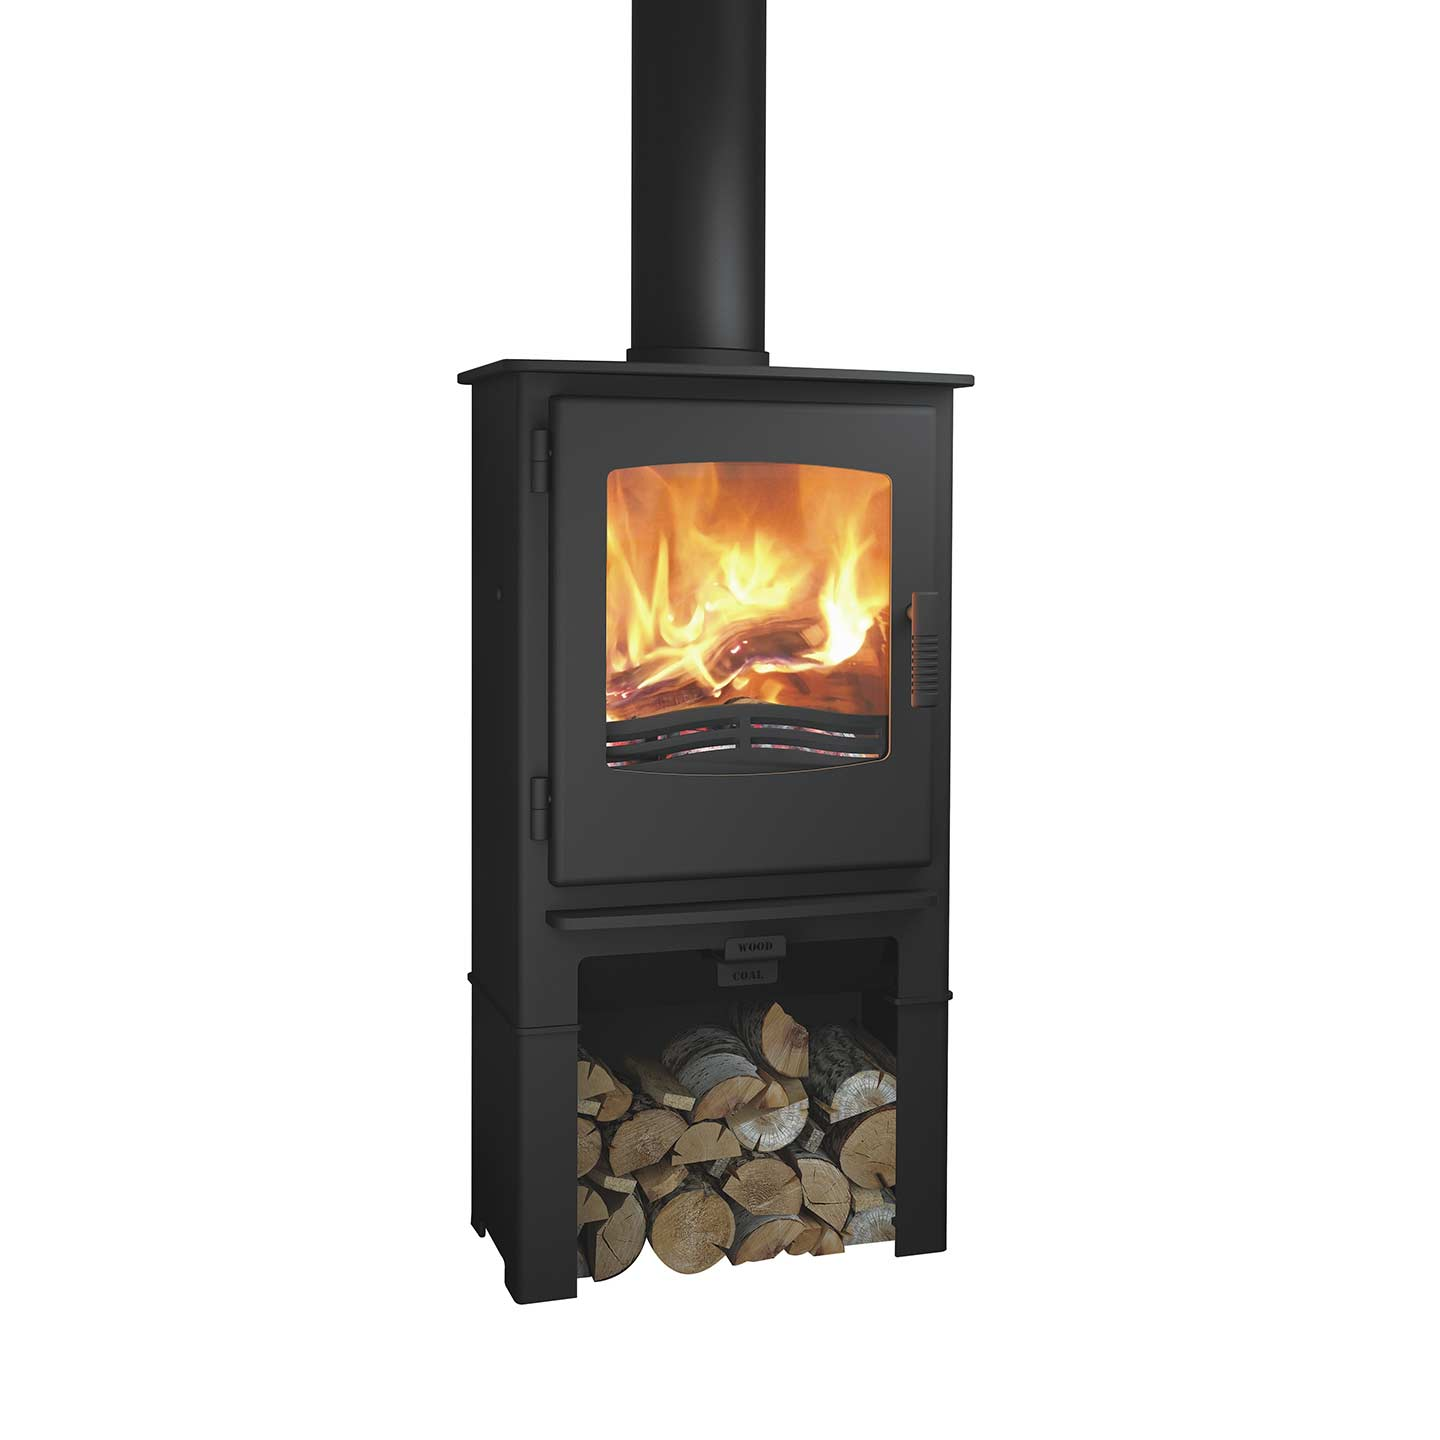 Broseley Desire 5 Se Log Store Multi Fuel Stove The